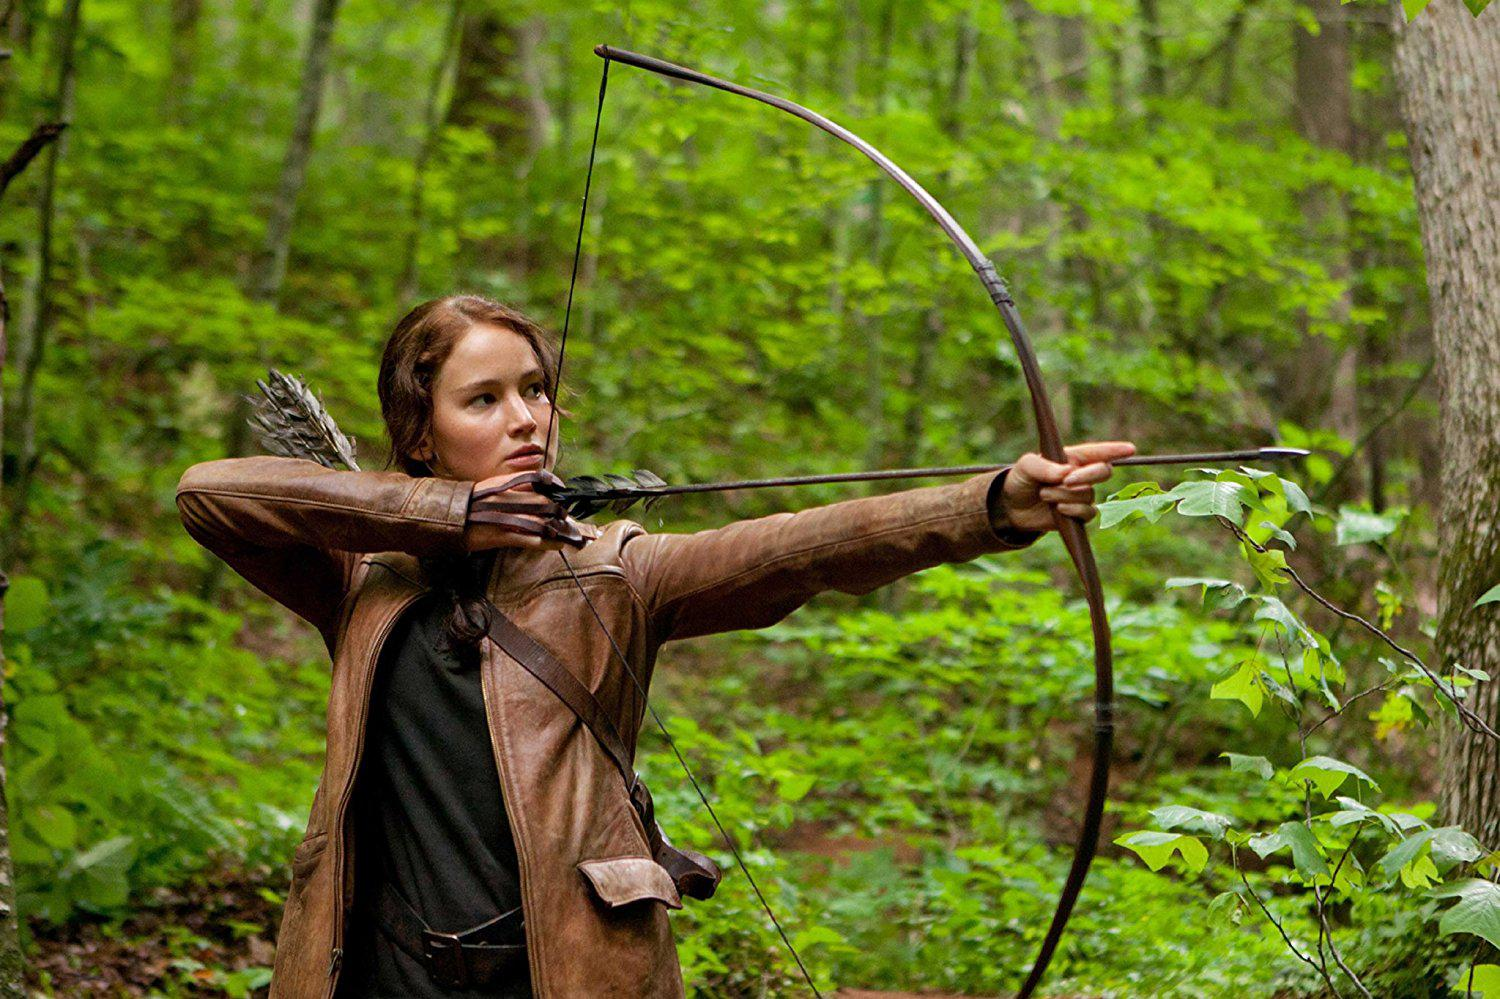 Jennifer Lawrence in The Hunger Games (2012).